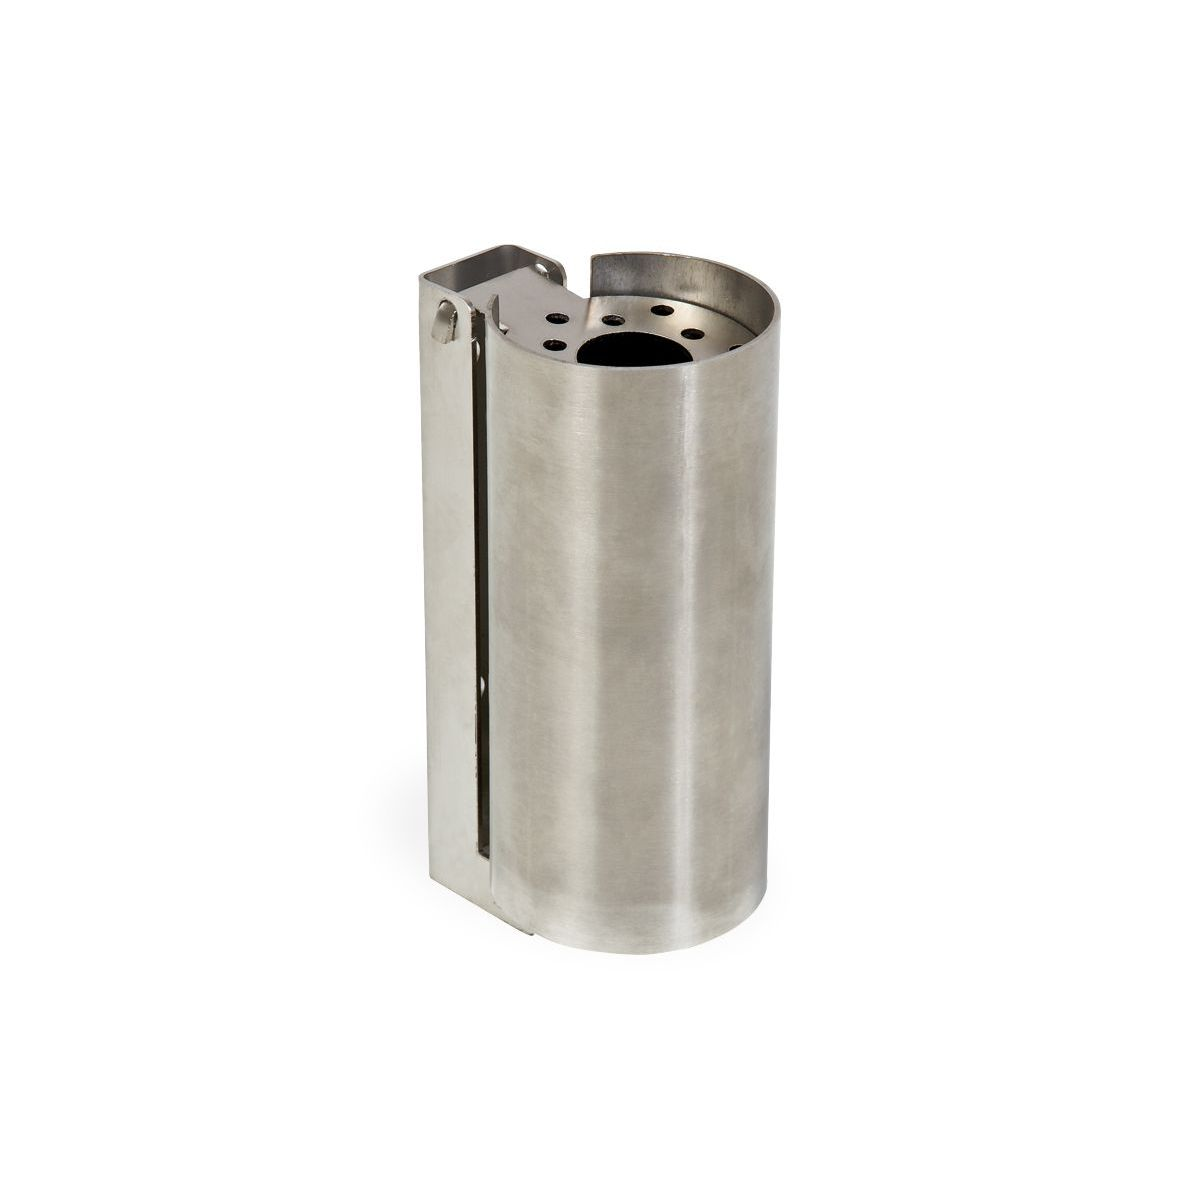 Cylindrical ashtray to hang up - CE-4